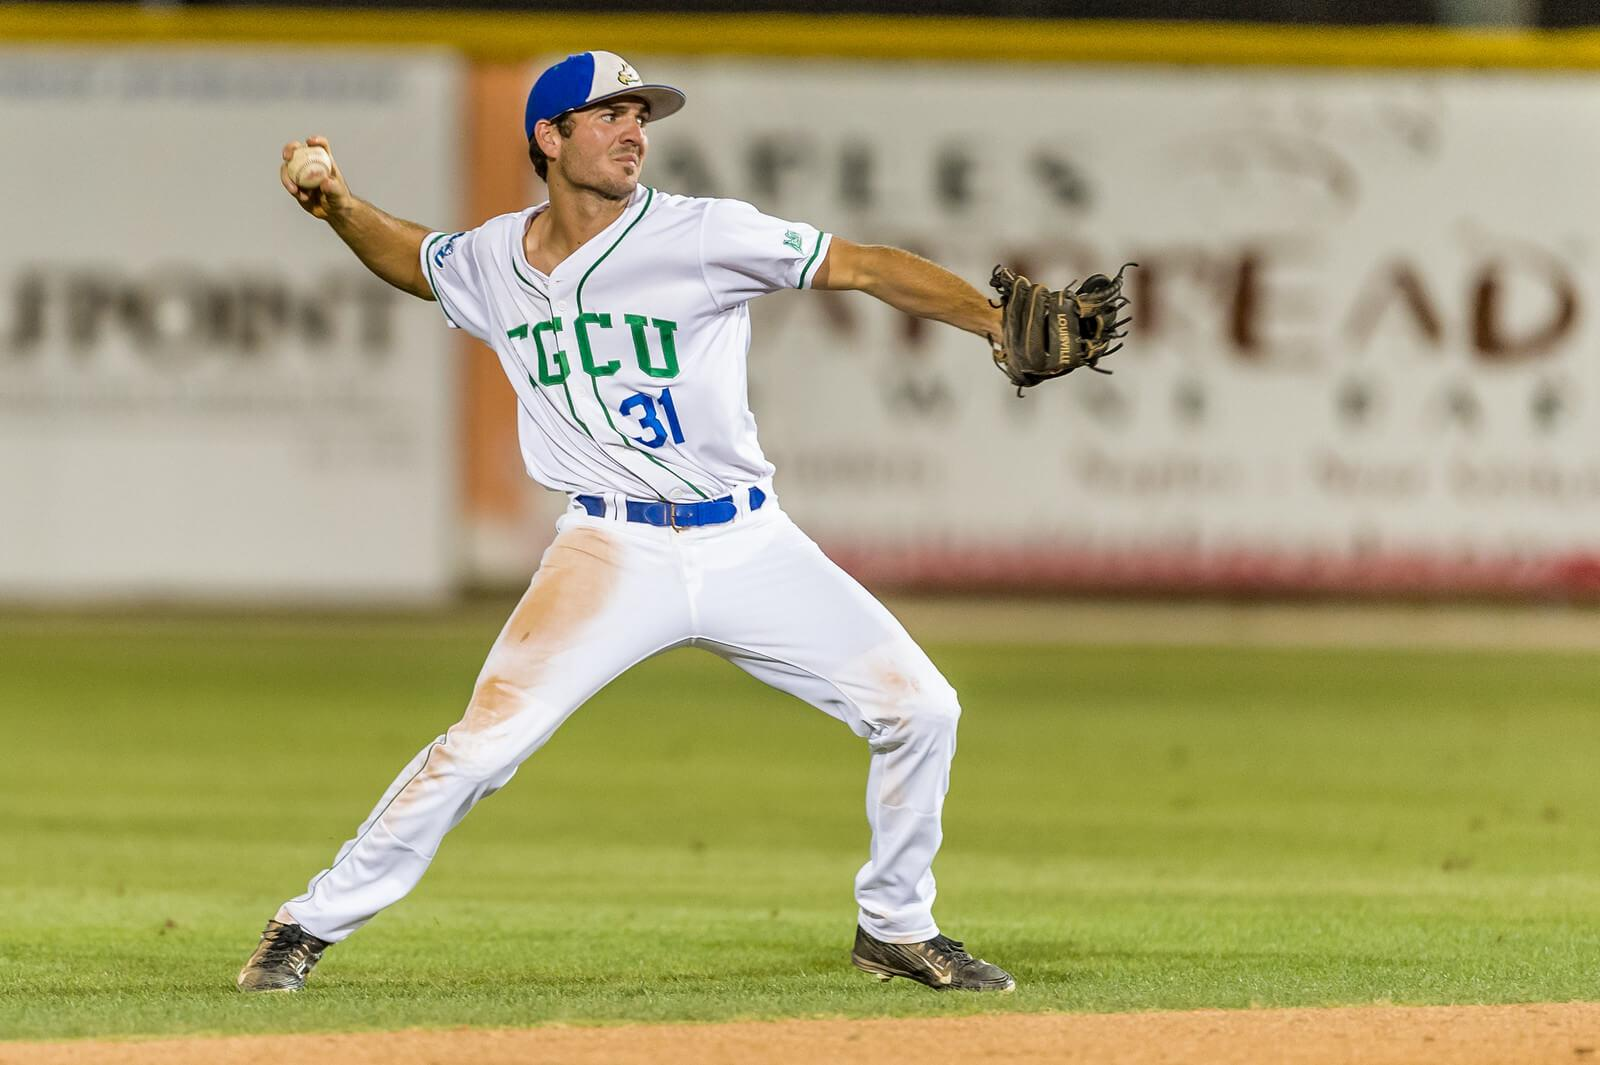 Jake Noll drafted 214th by the Washington Nationals, becomes FGCU baseball's 26th draftee